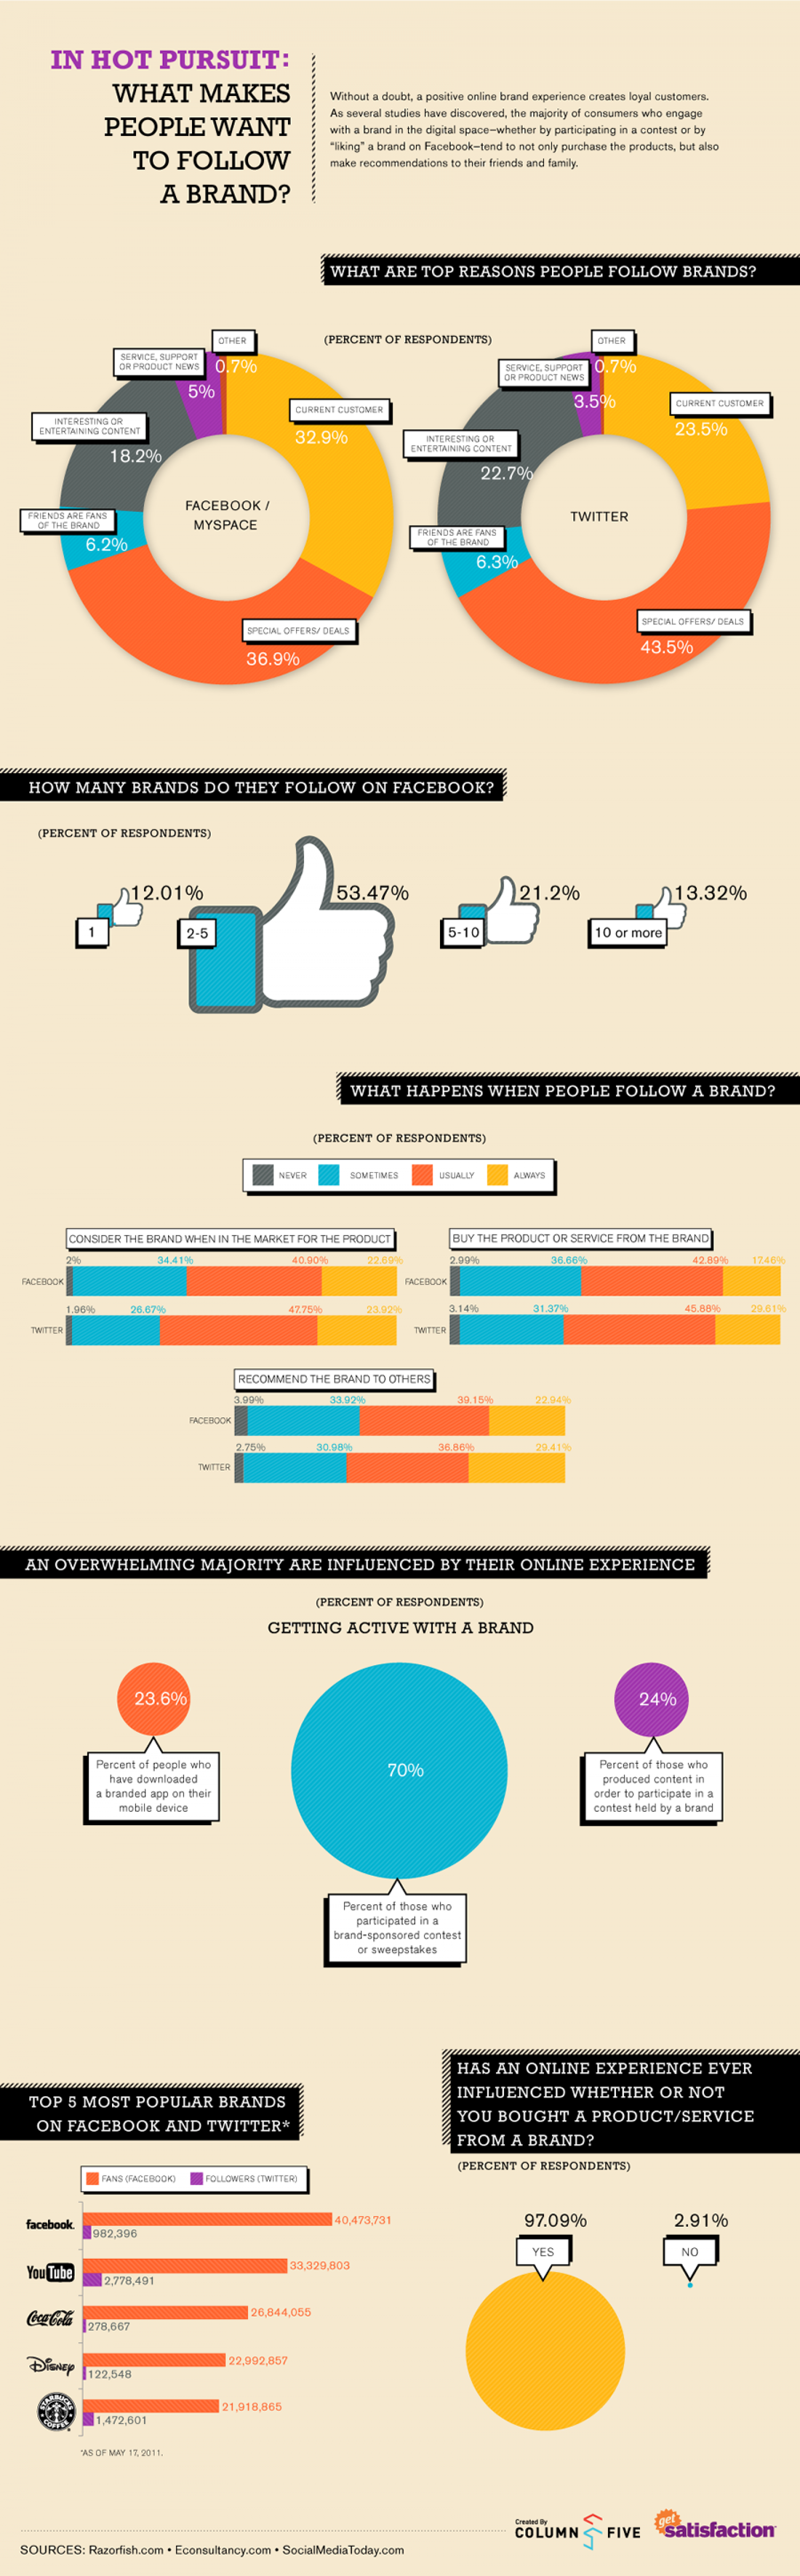 In Hot Pursuit: What Makes People Want to Follow a Brand? Infographic